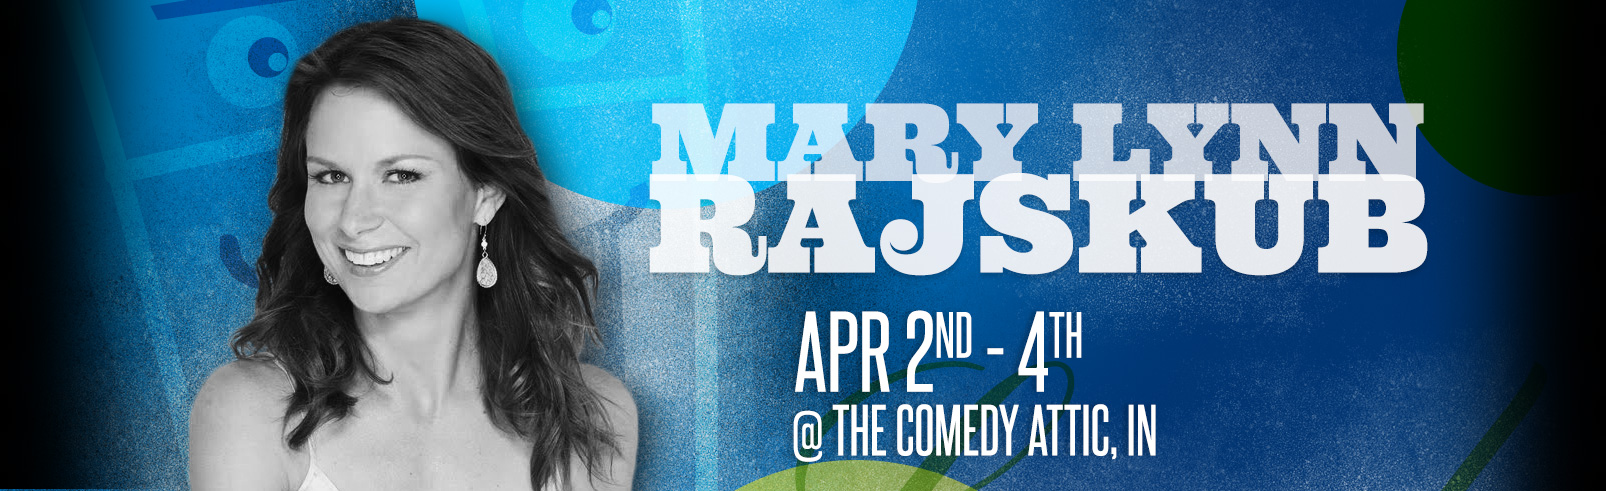 Mary Jane Rajskub @ The Comedy Attic